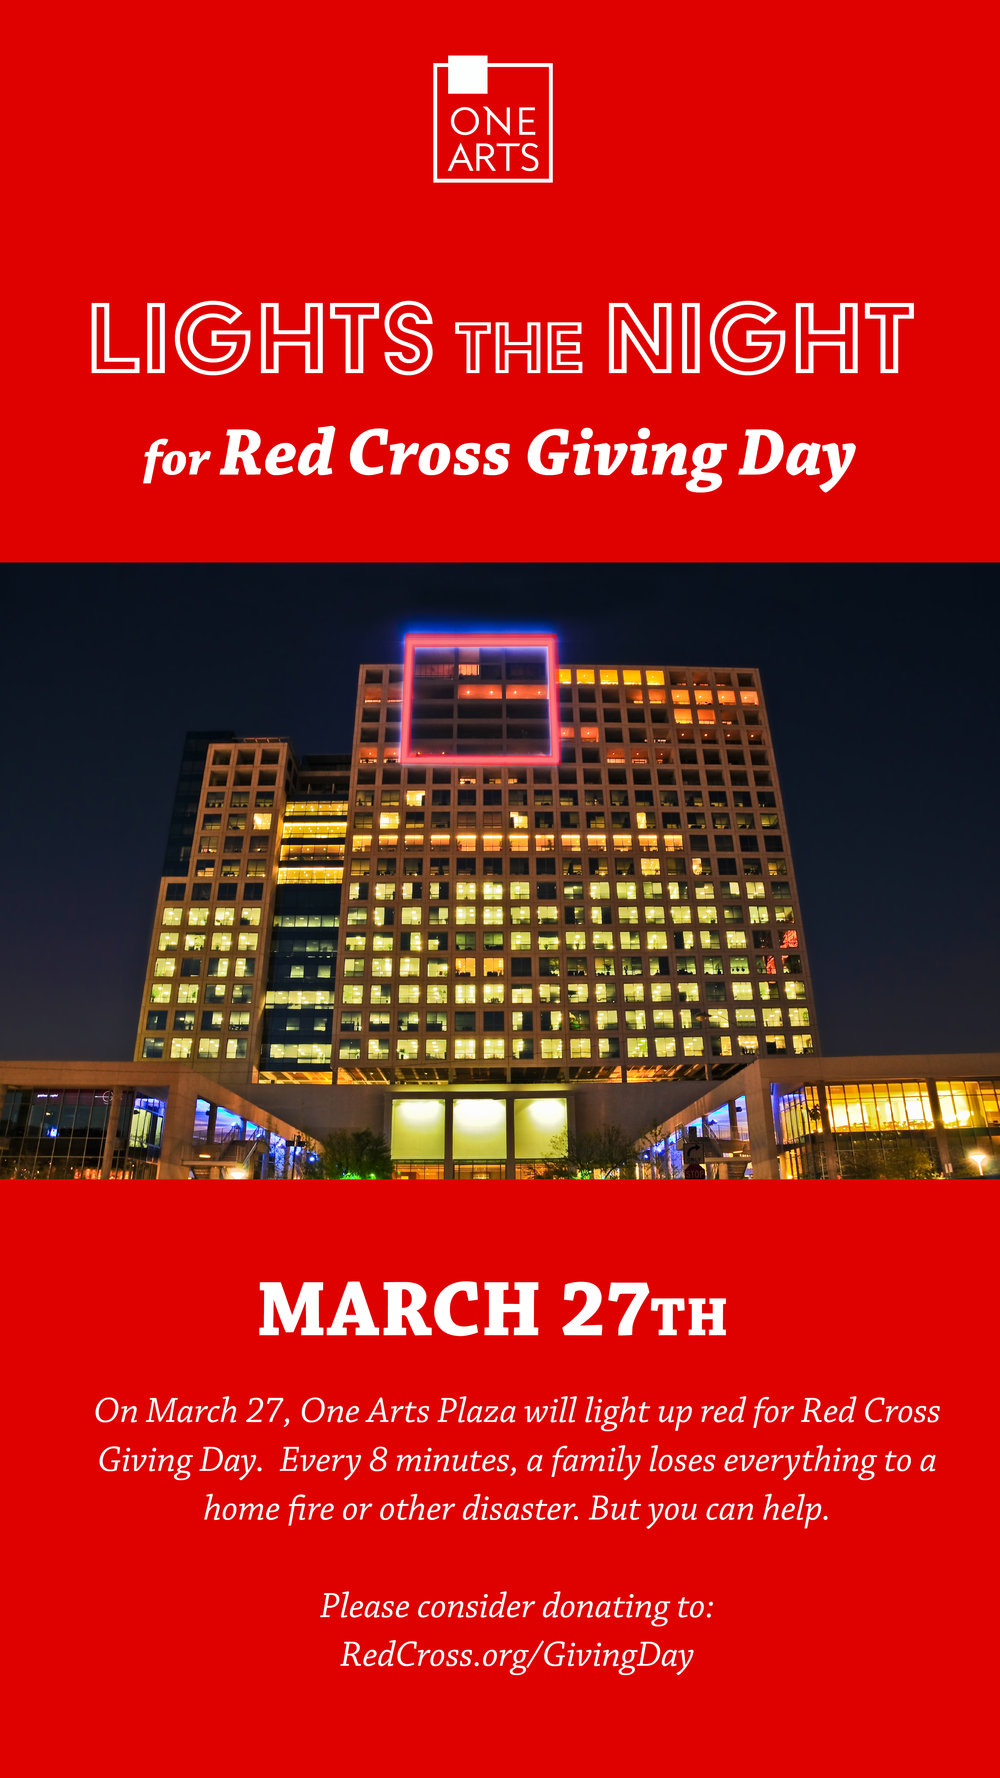 OAP Lights It Up-Red Cross Giving Day-March.jpg